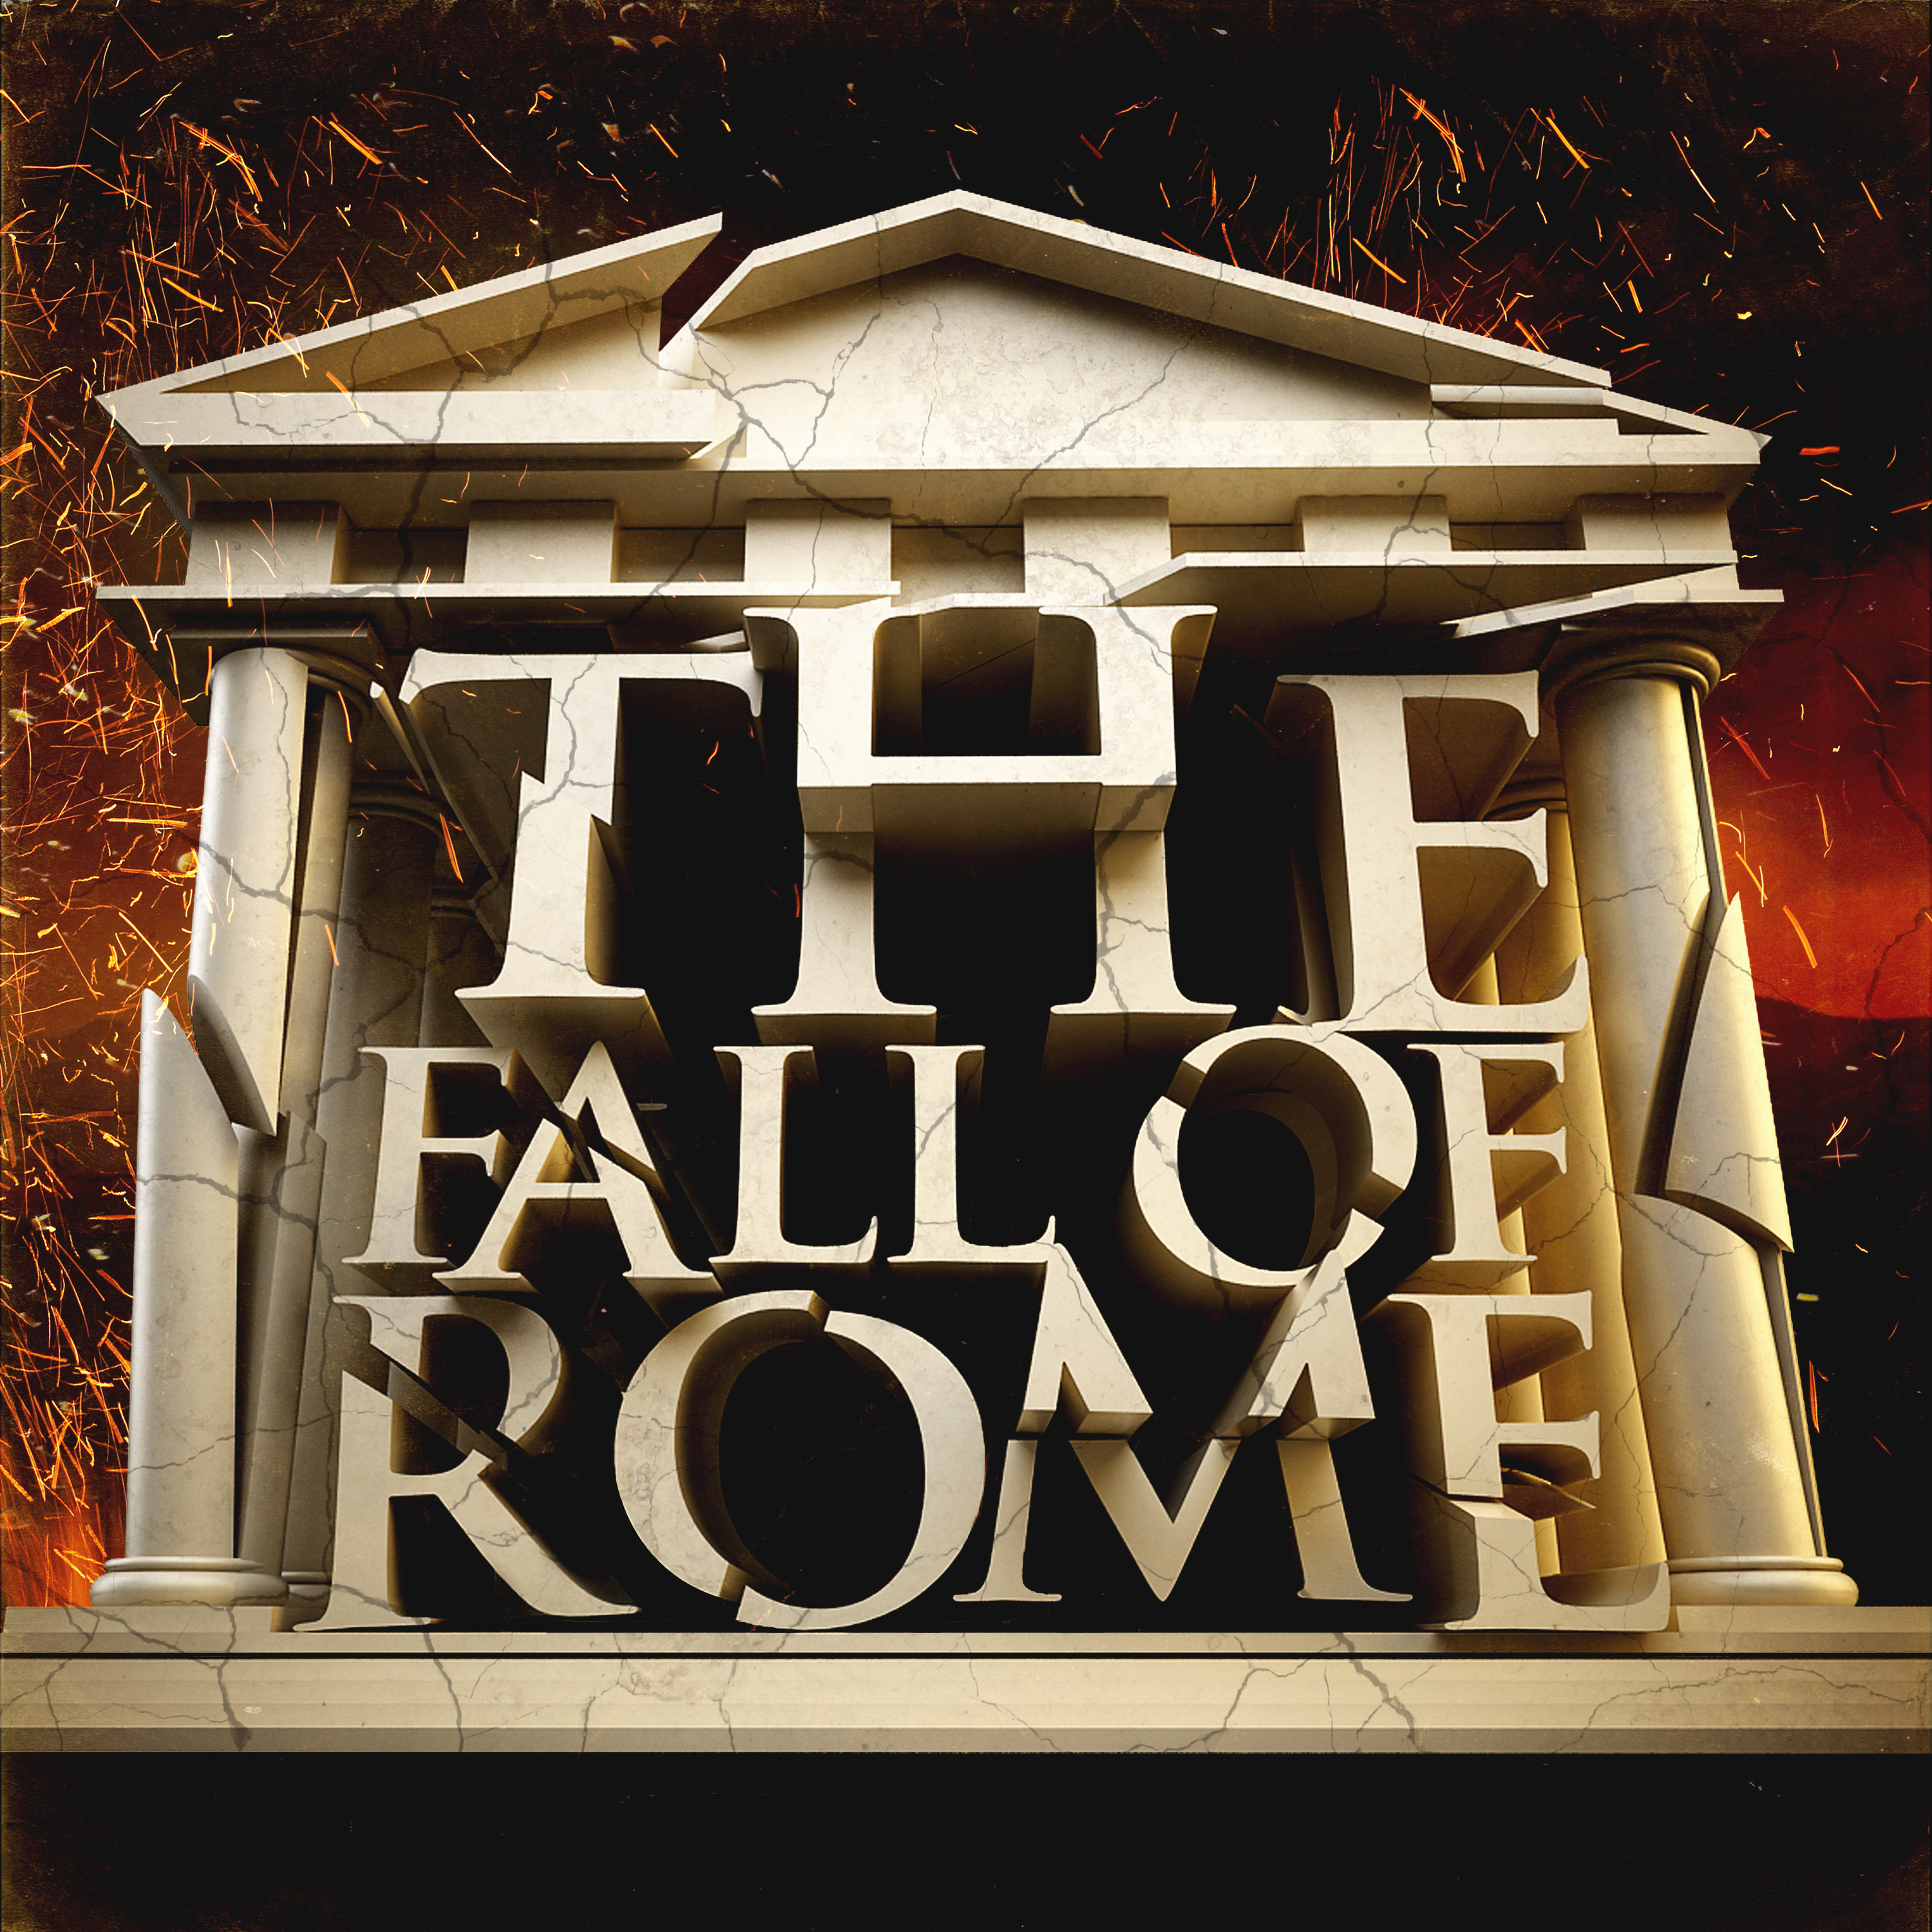 23: Could the Roman Empire Have Survived?